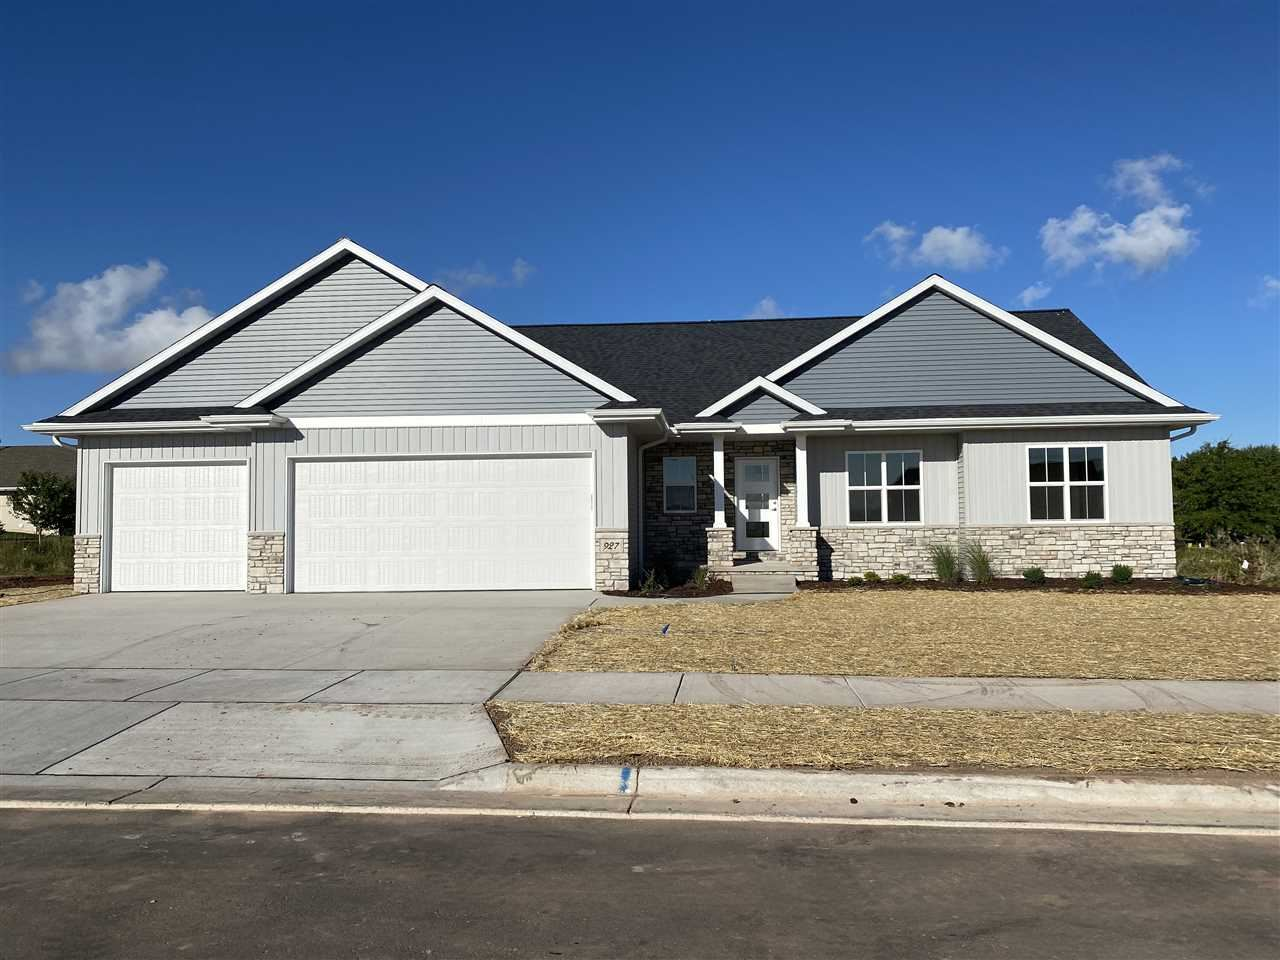 3571 BLACK SHEEP Way, Green Bay, WI 54311 - MLS#: 50233715